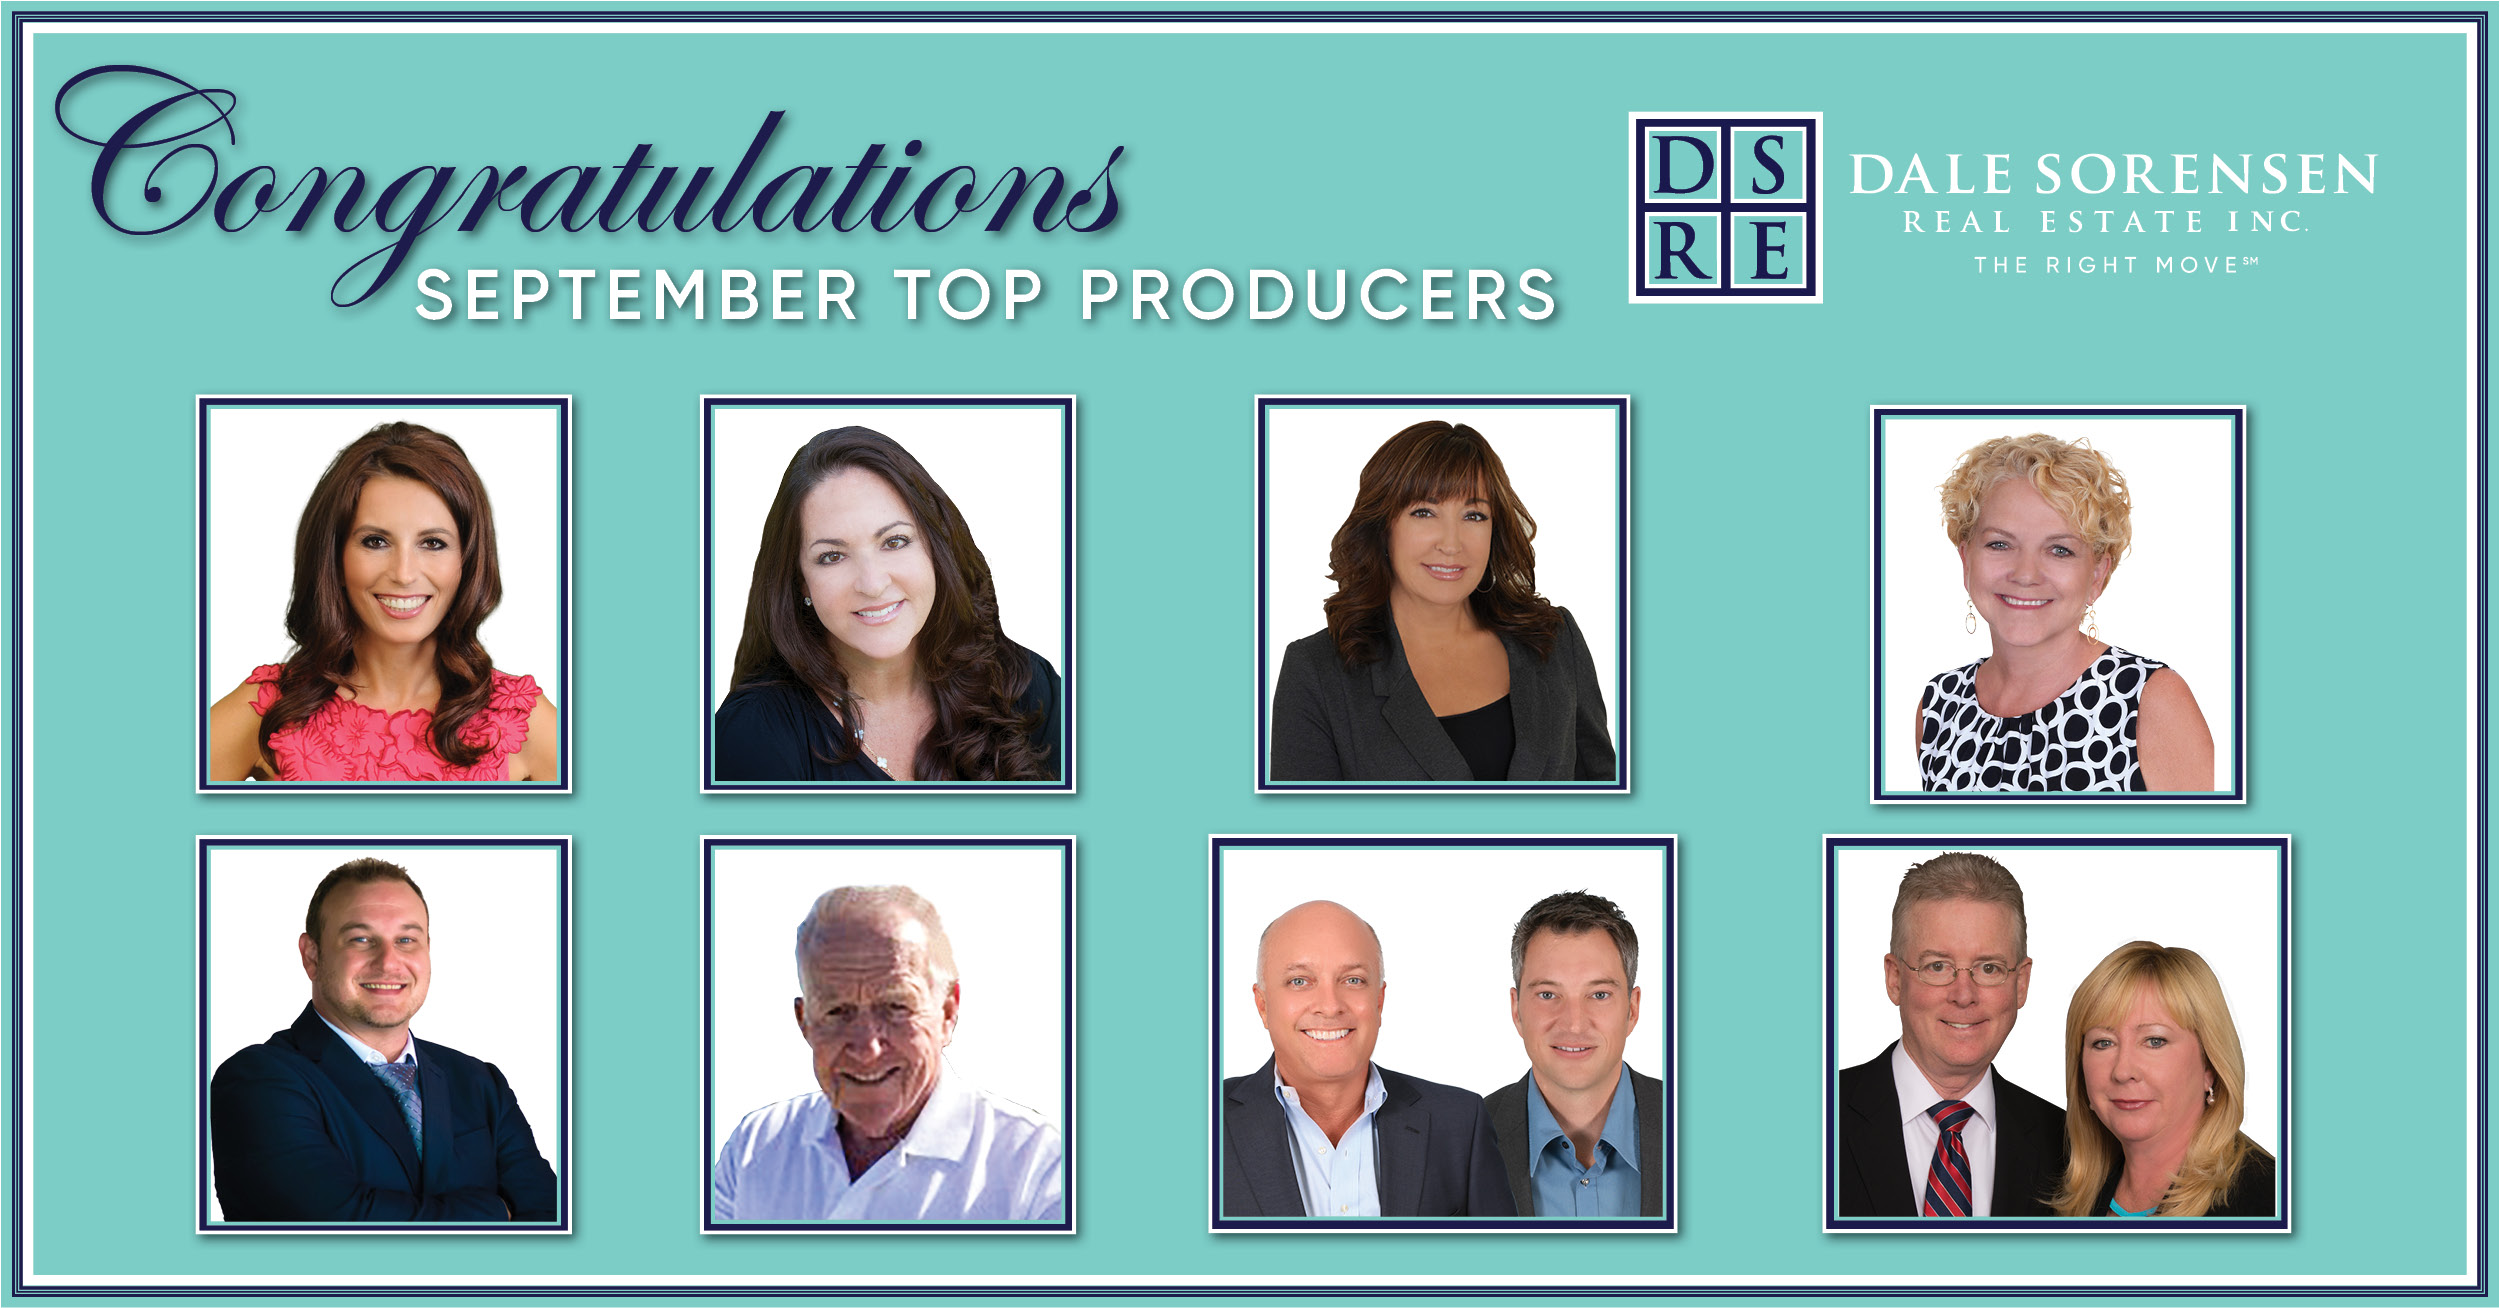 Congratulations September Top Producers Dale Sorensen Real Estate INC The Right Move